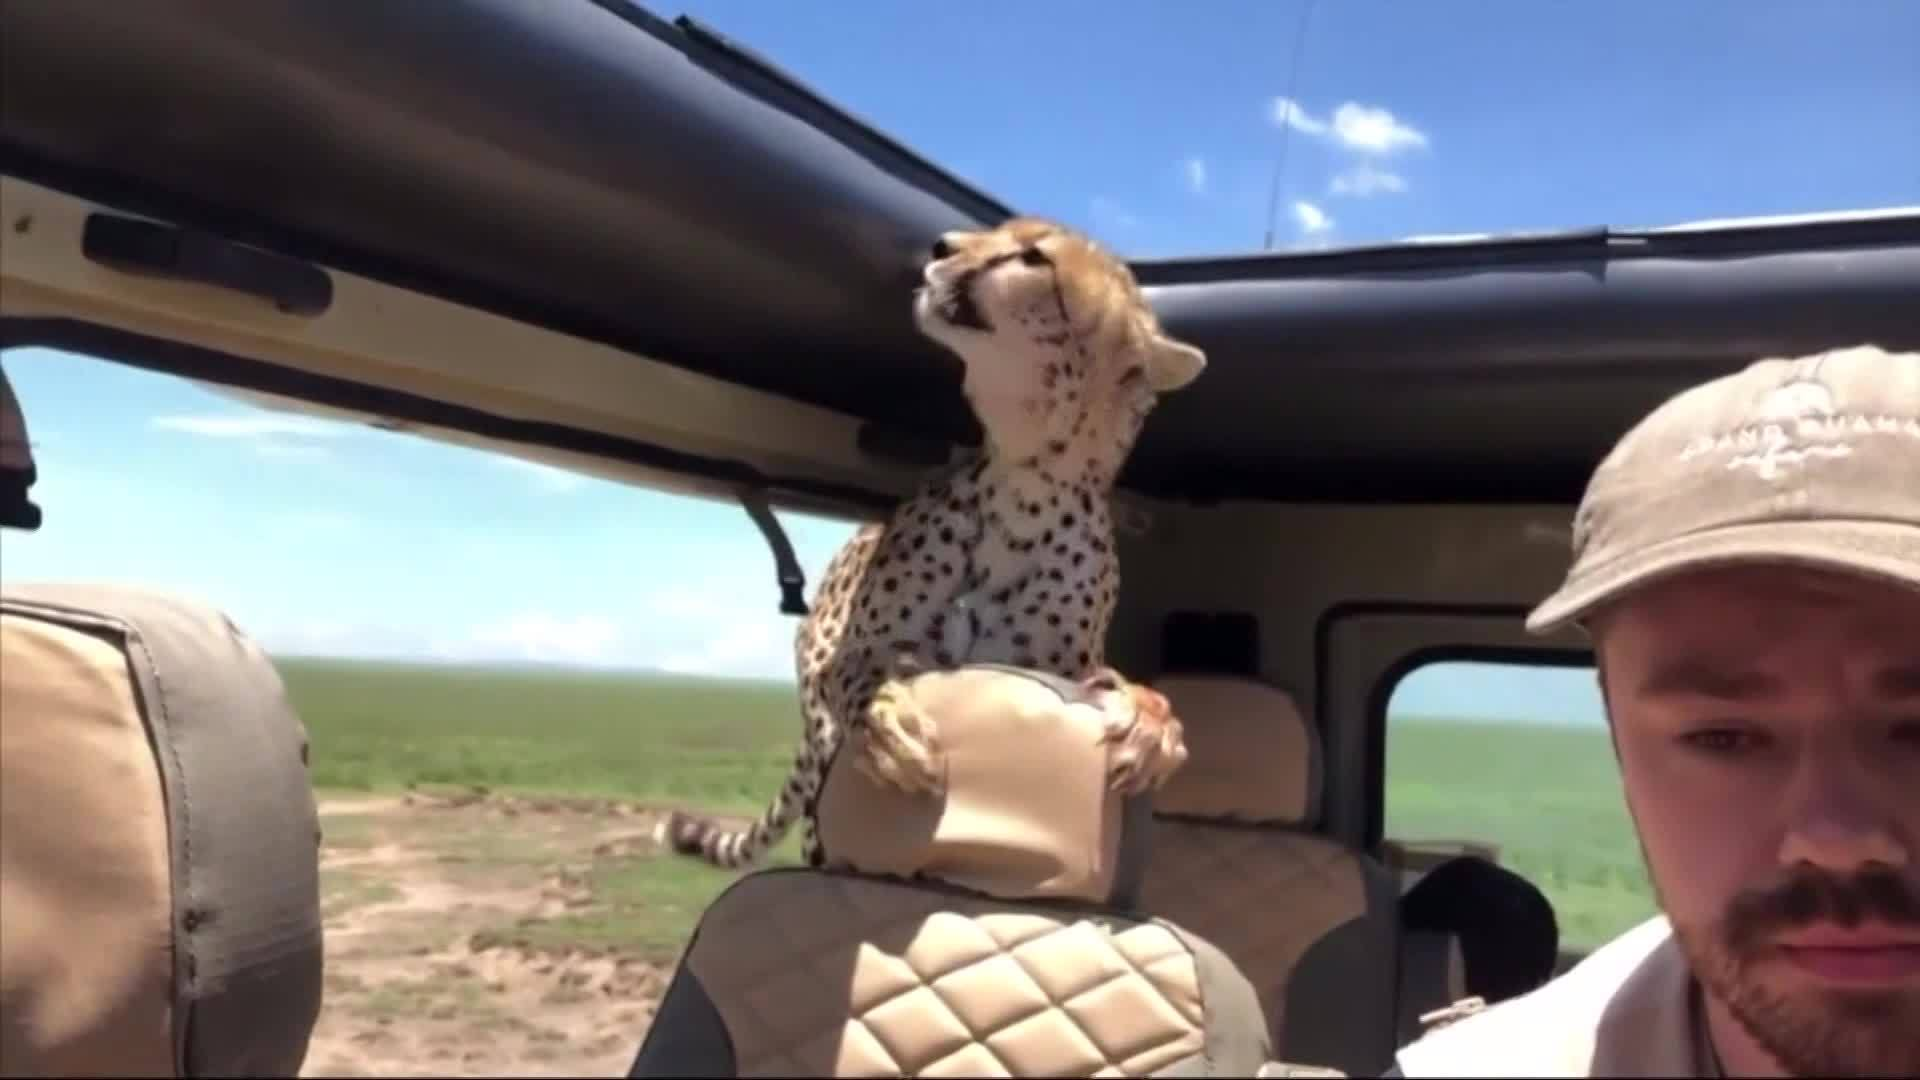 VIDEO: Cheetah surprises safari goers by jumping into man's jeep